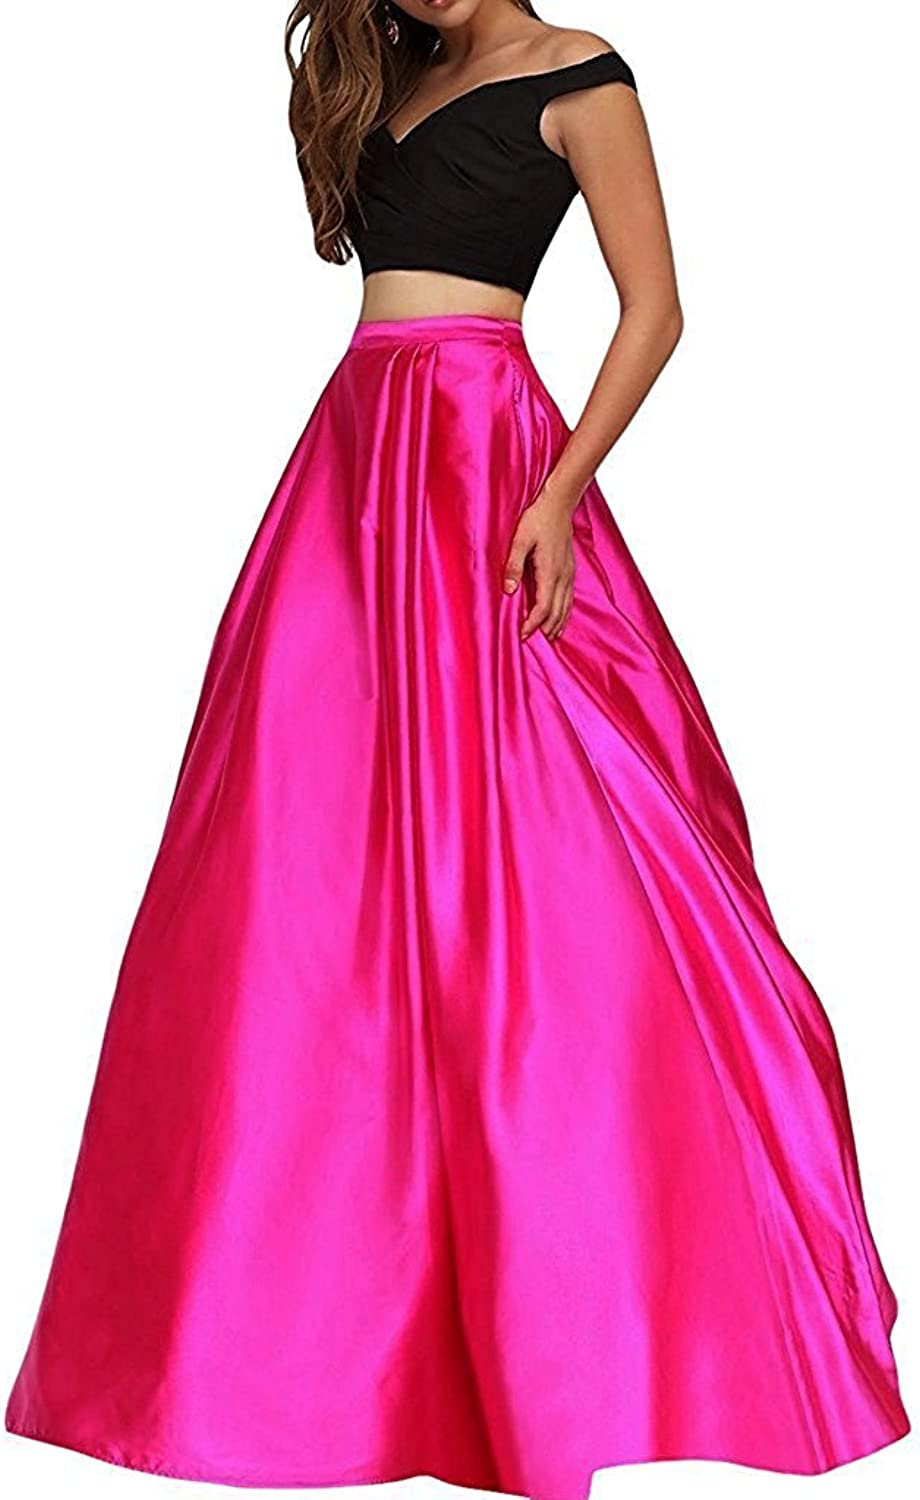 Hjtrust Women's Prom Dresses Two Pieces 2018 Long Formal Evening Dresses Party Gown H098